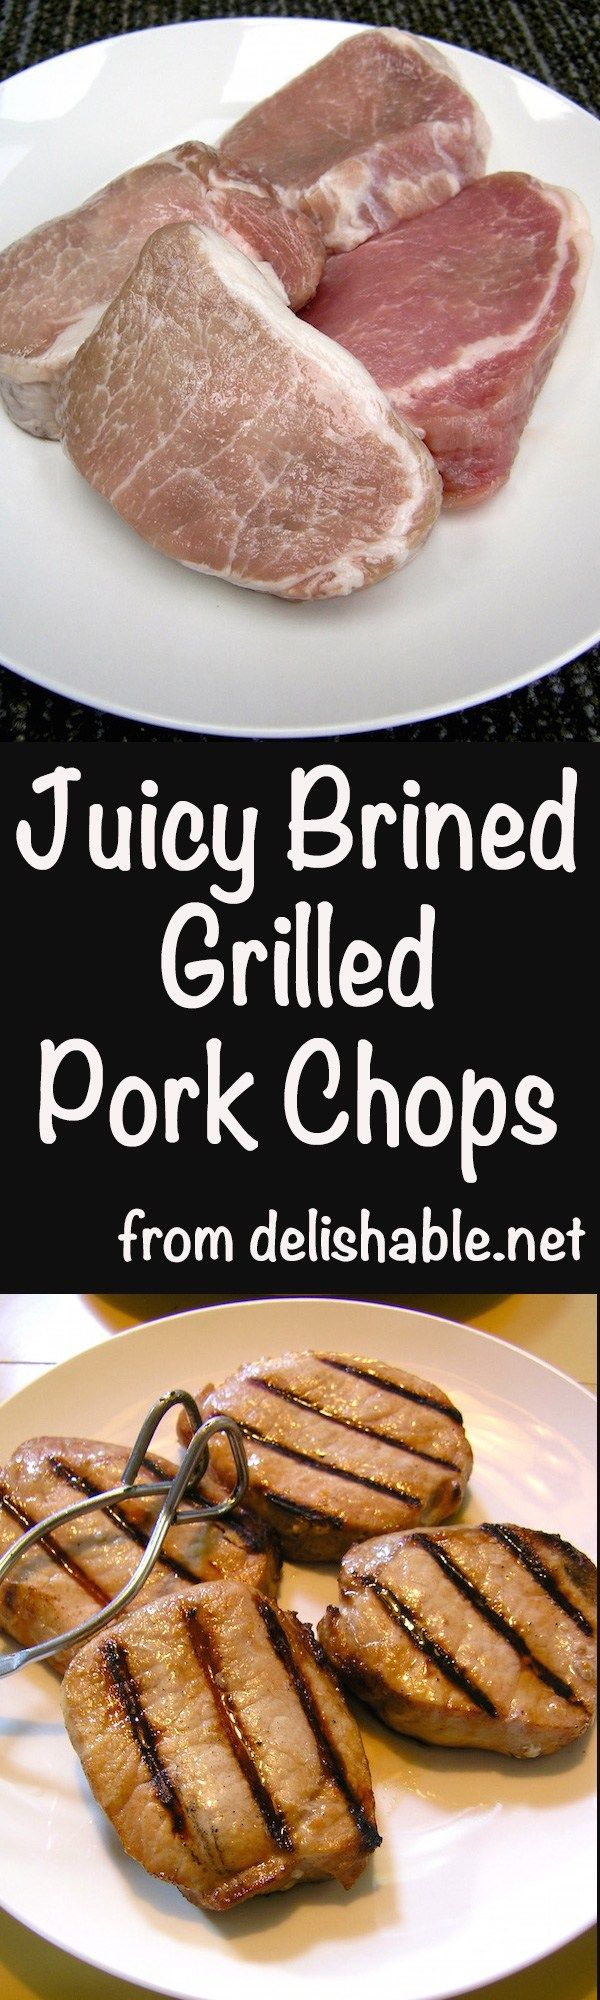 """Juicy Brined Grilled Pork Chops - the secret to """"juicy"""" is in the brining. Start them early in the day, or the day before, and just pop them on the grill. 